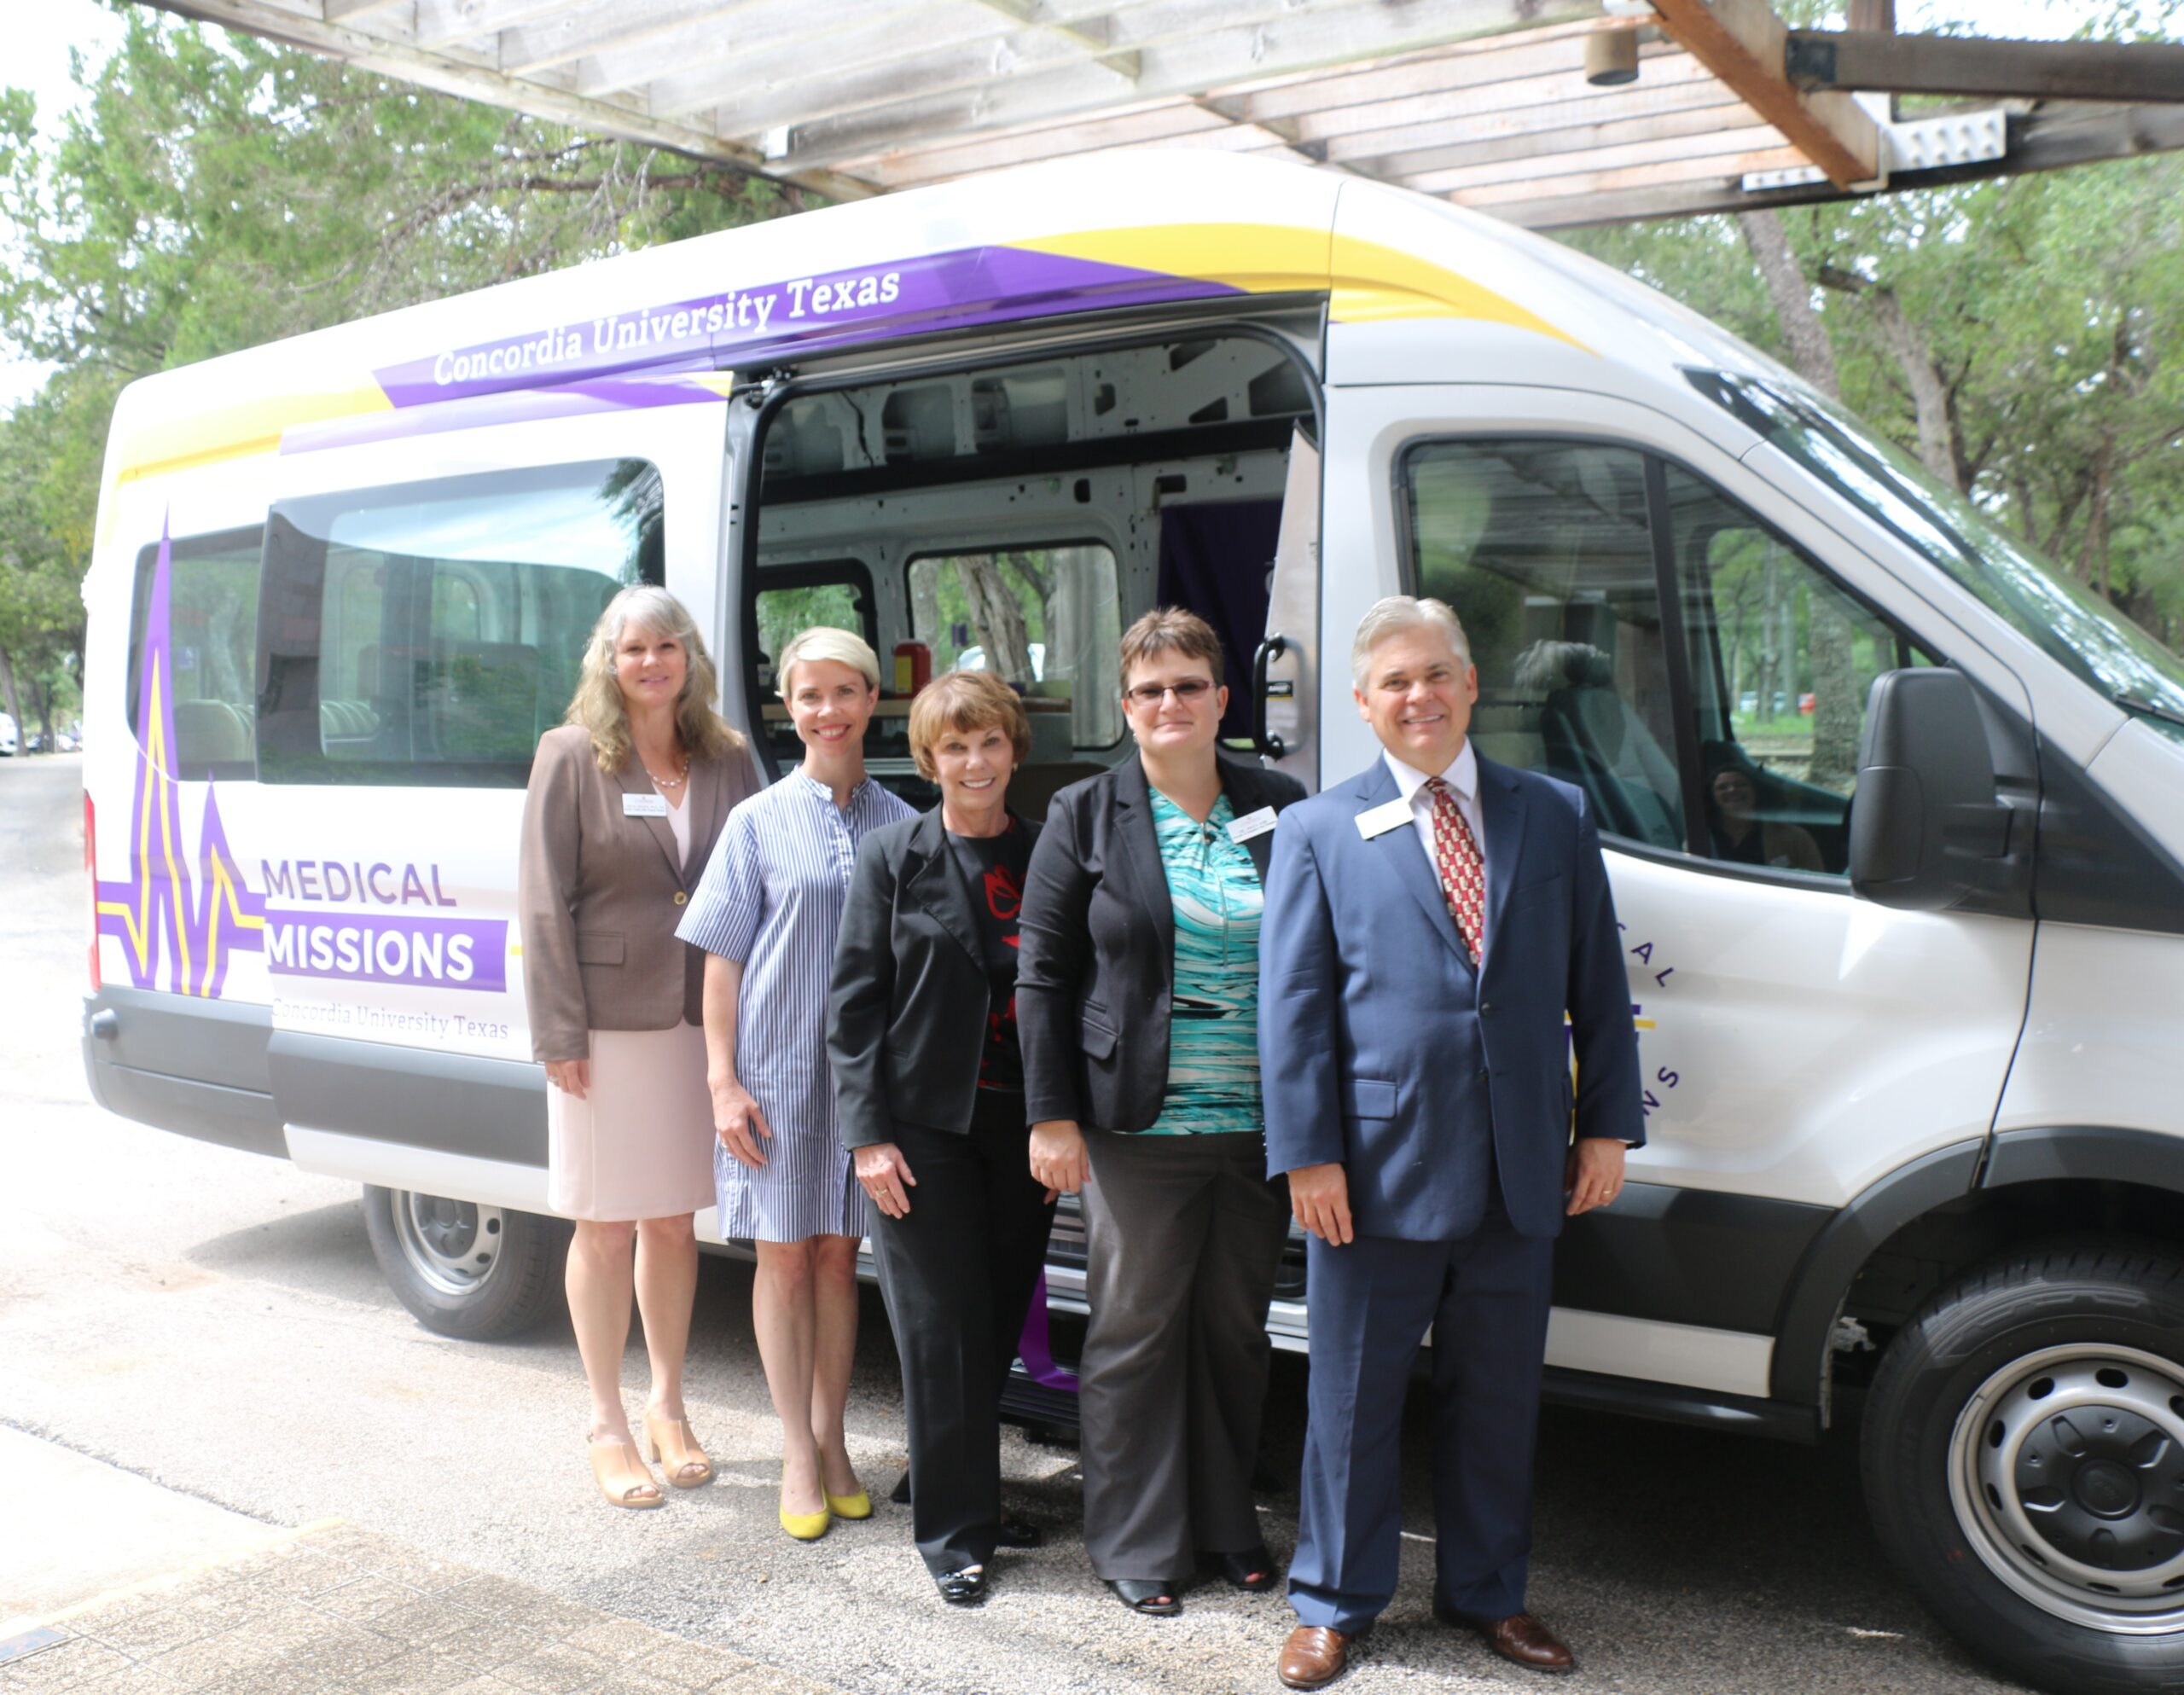 Concordia Texas representatives stand in front of the new Mobile Medical Missions van to be used with CTX's nursing program. Used with permission